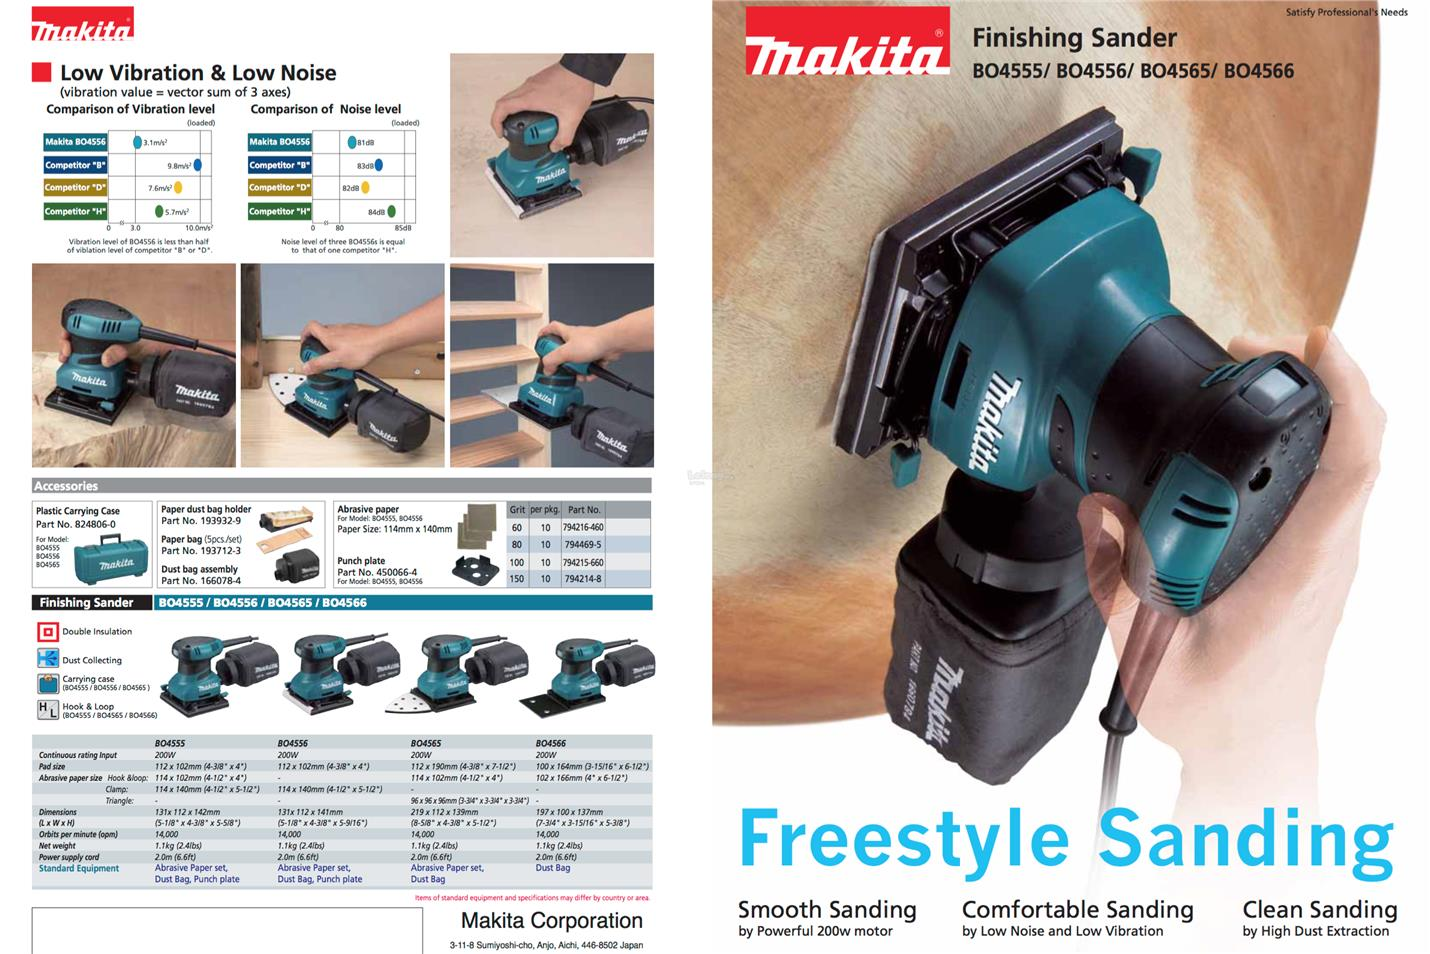 BO4556 MAKITA FINISHING SANDER 200W